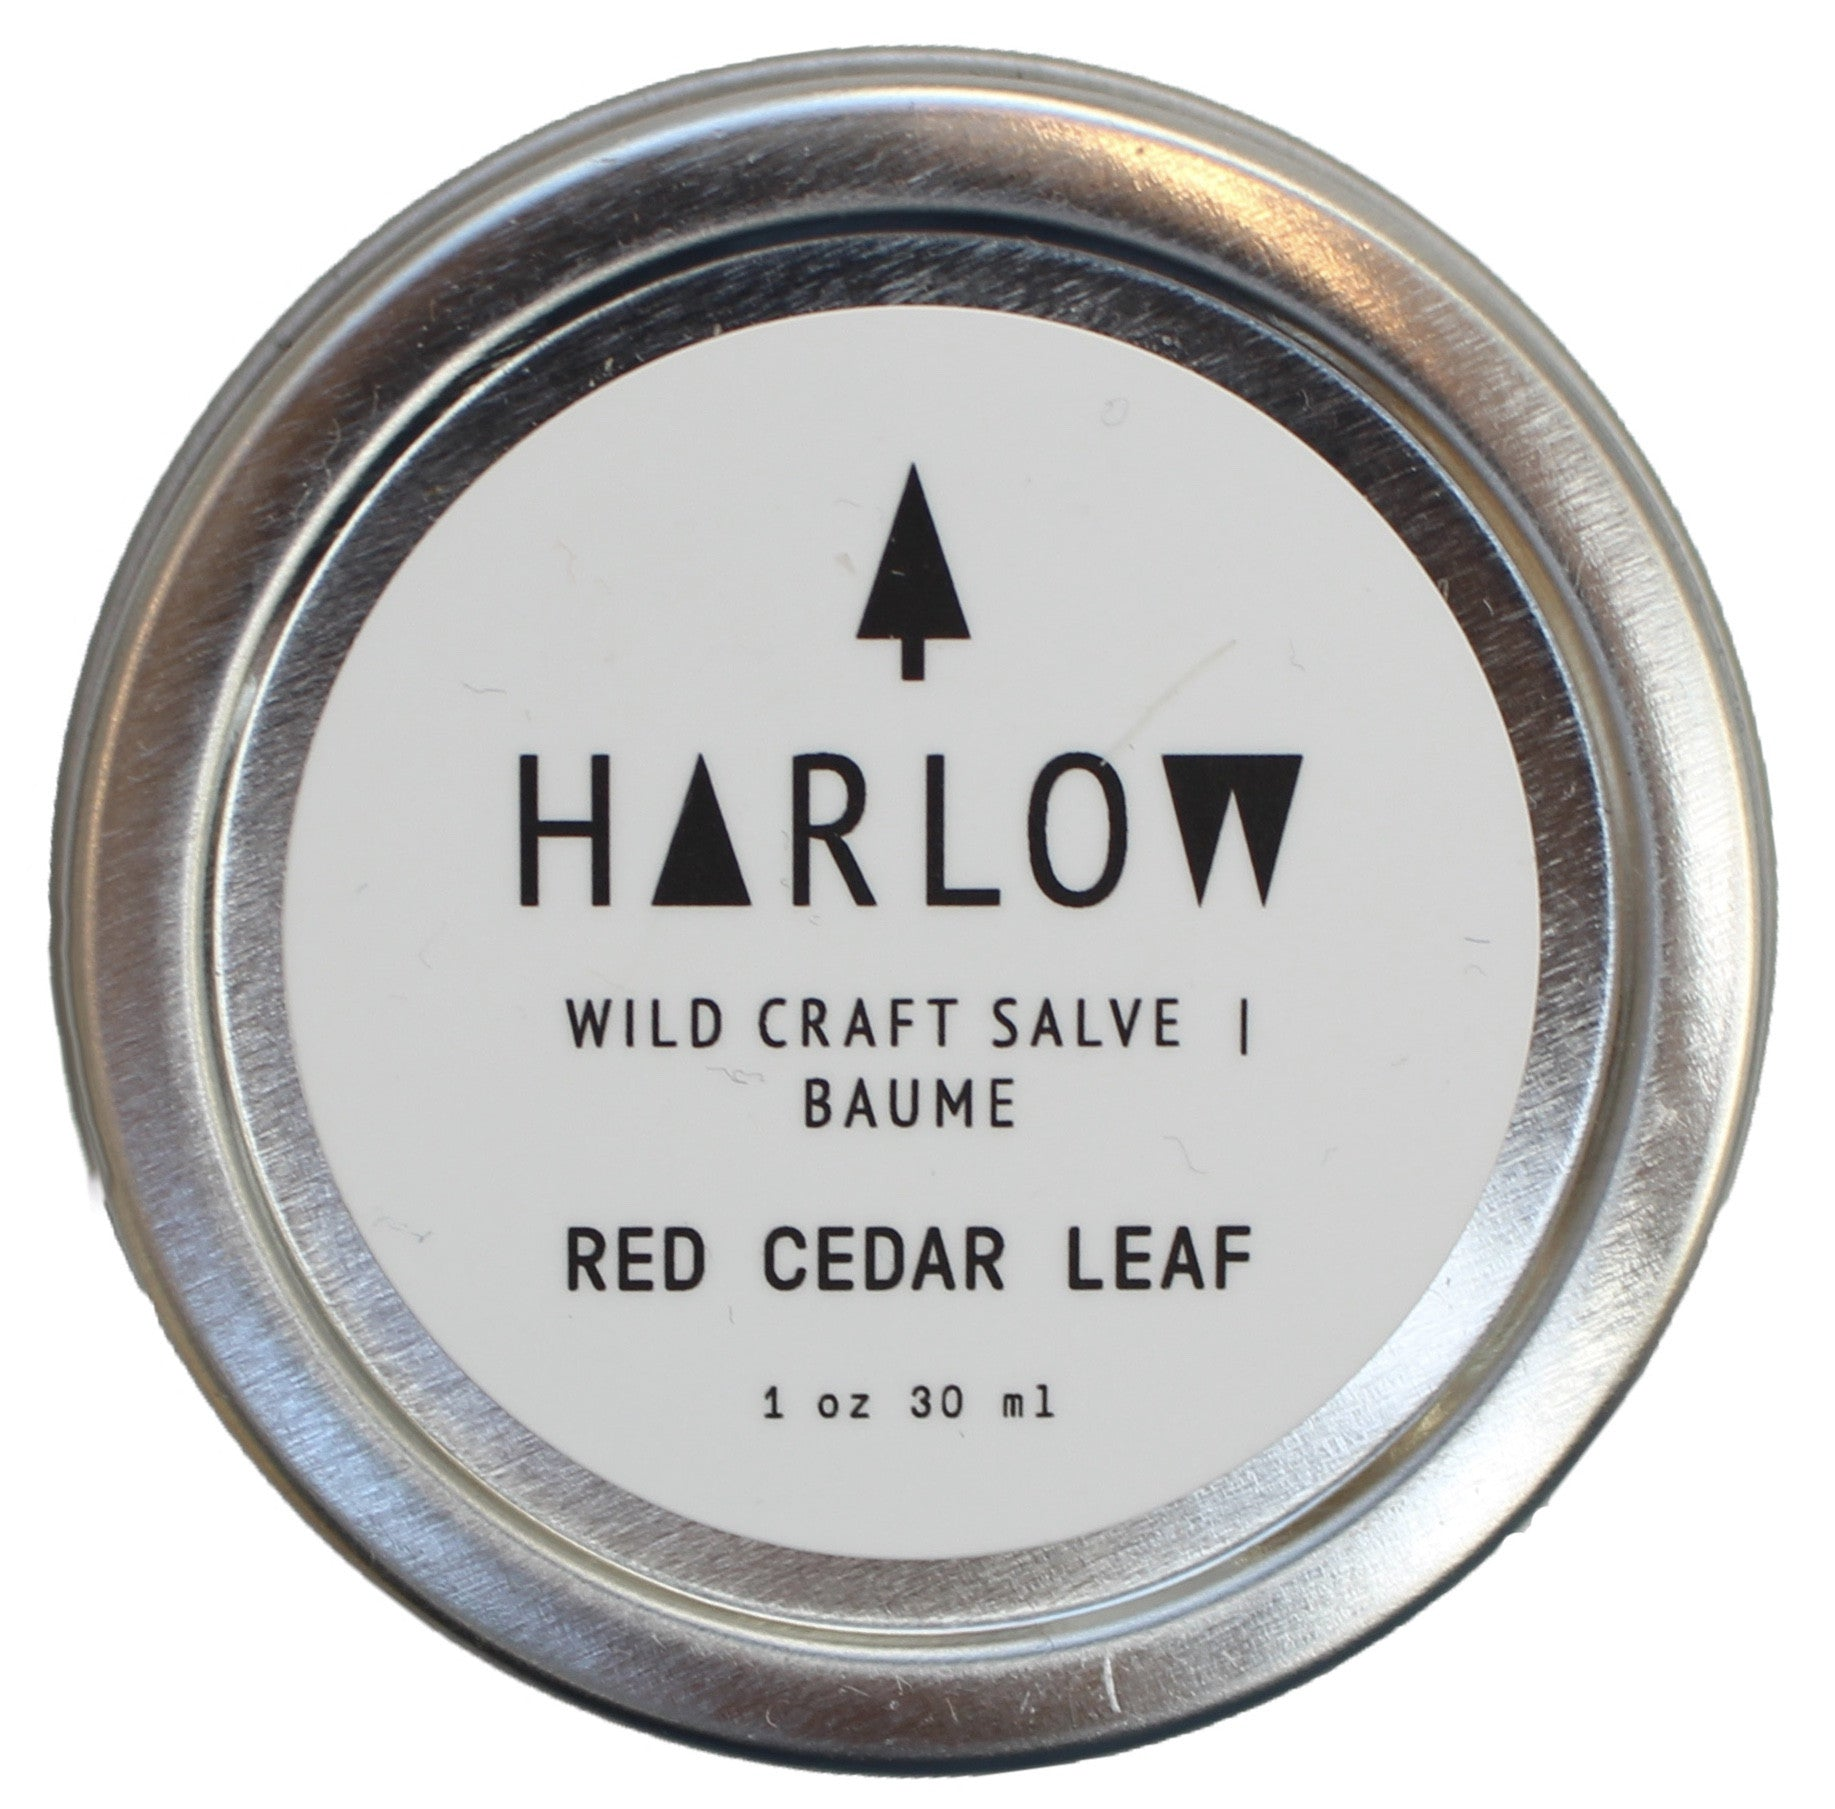 Harlow Red Cedar Leaf Salve